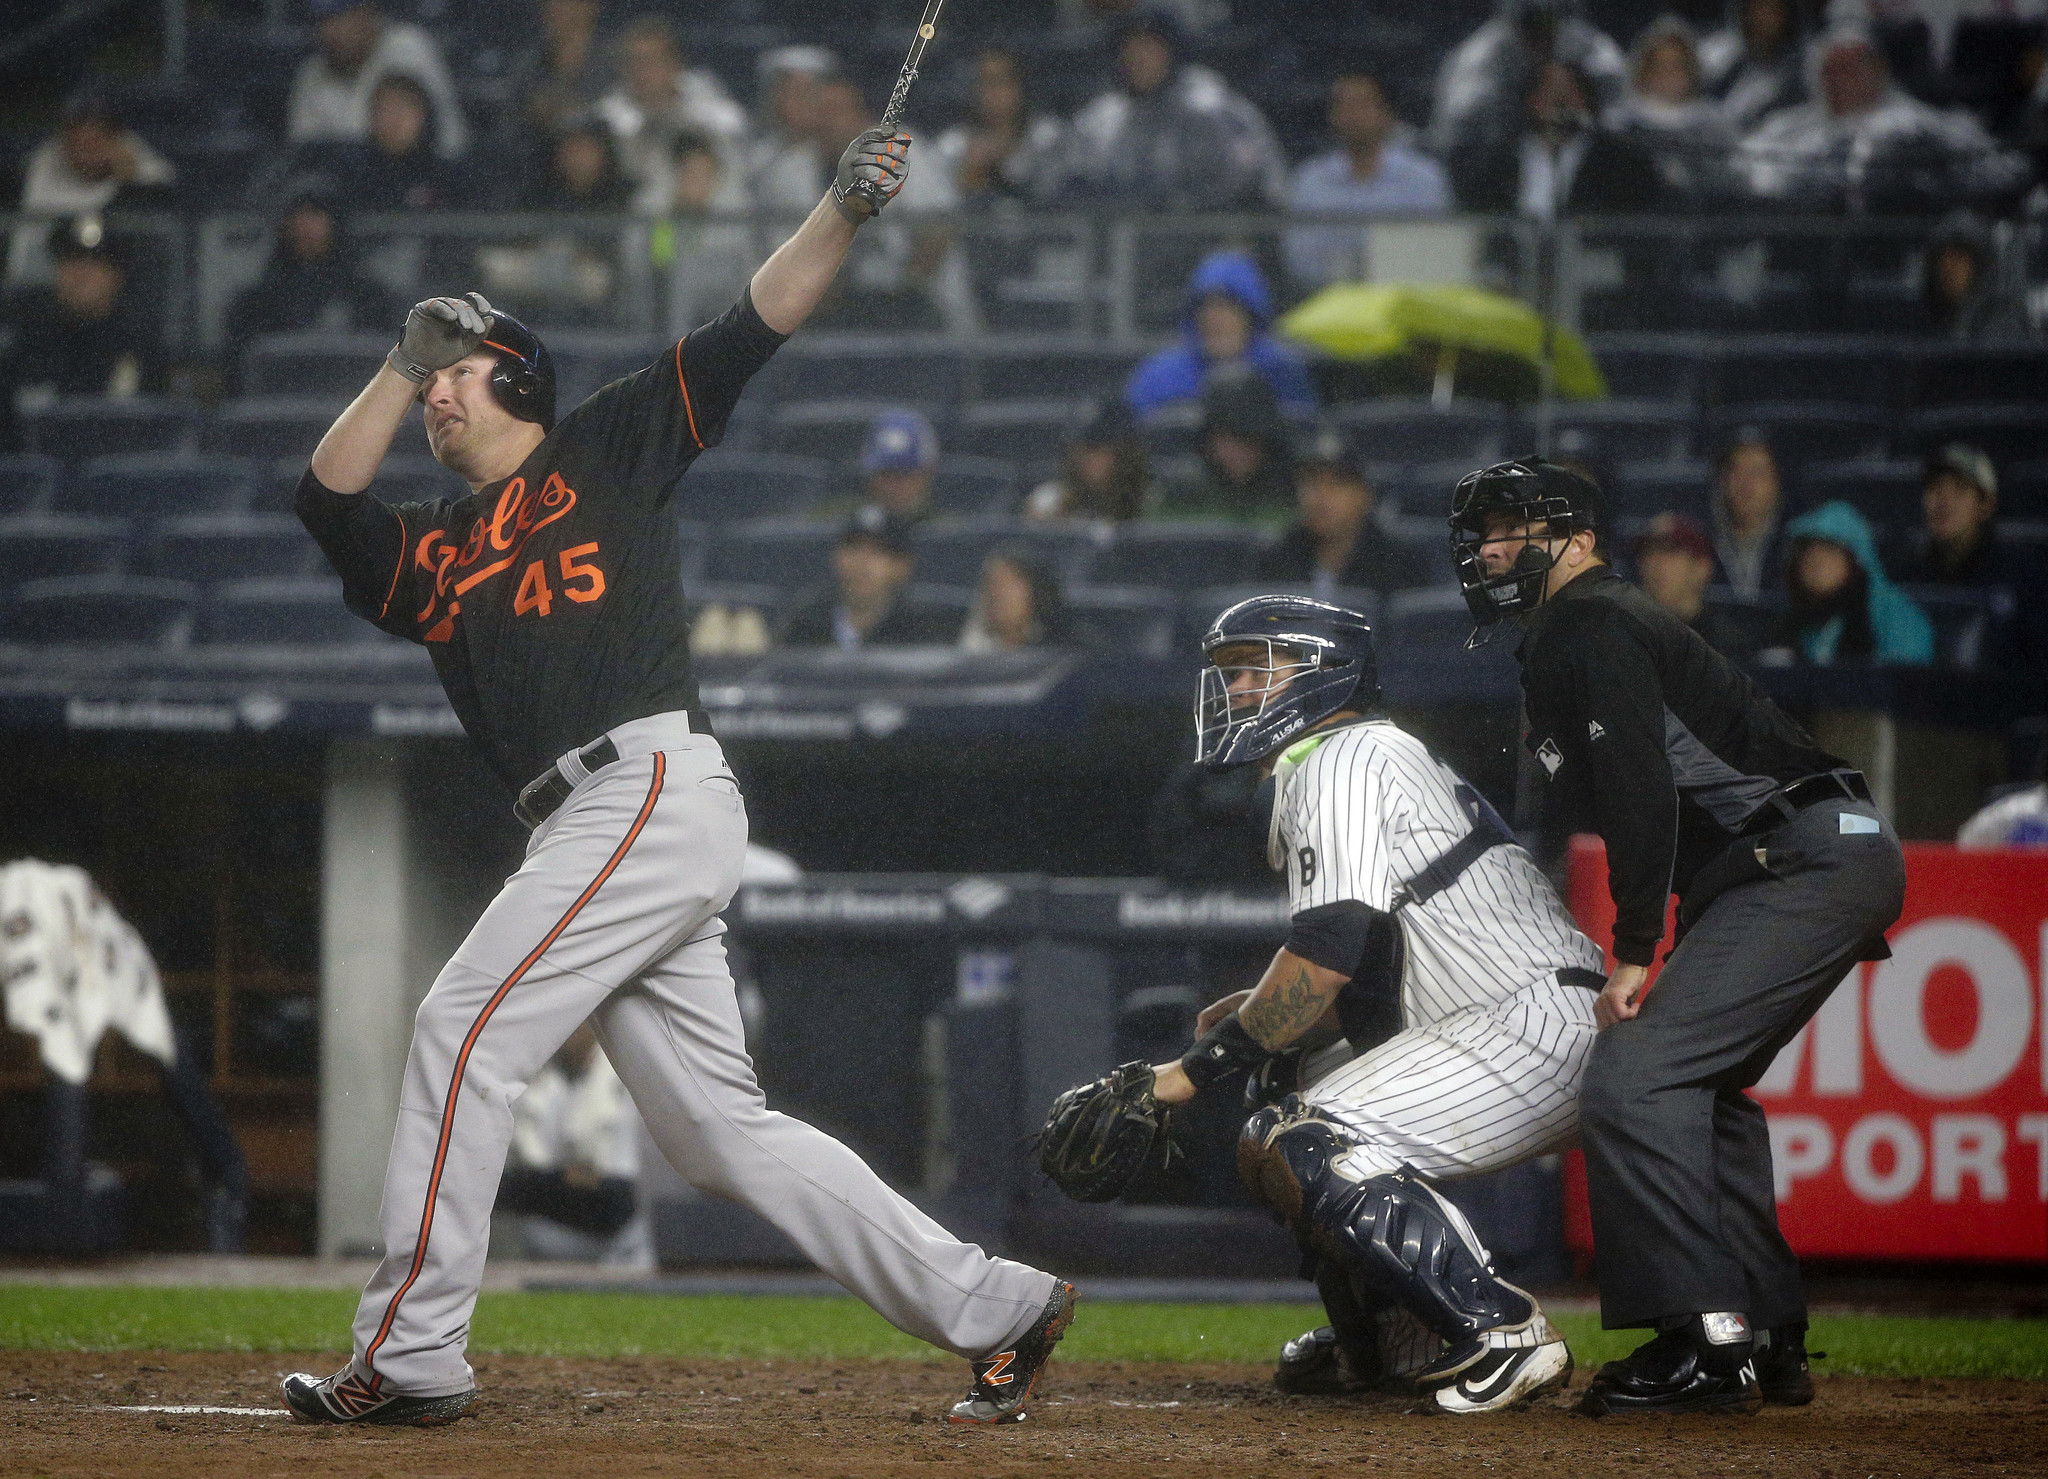 Bal-mark-trumbo-rejects-orioles-qualifying-offer-team-will-get-draft-pick-if-he-signs-elsewhere-20161114